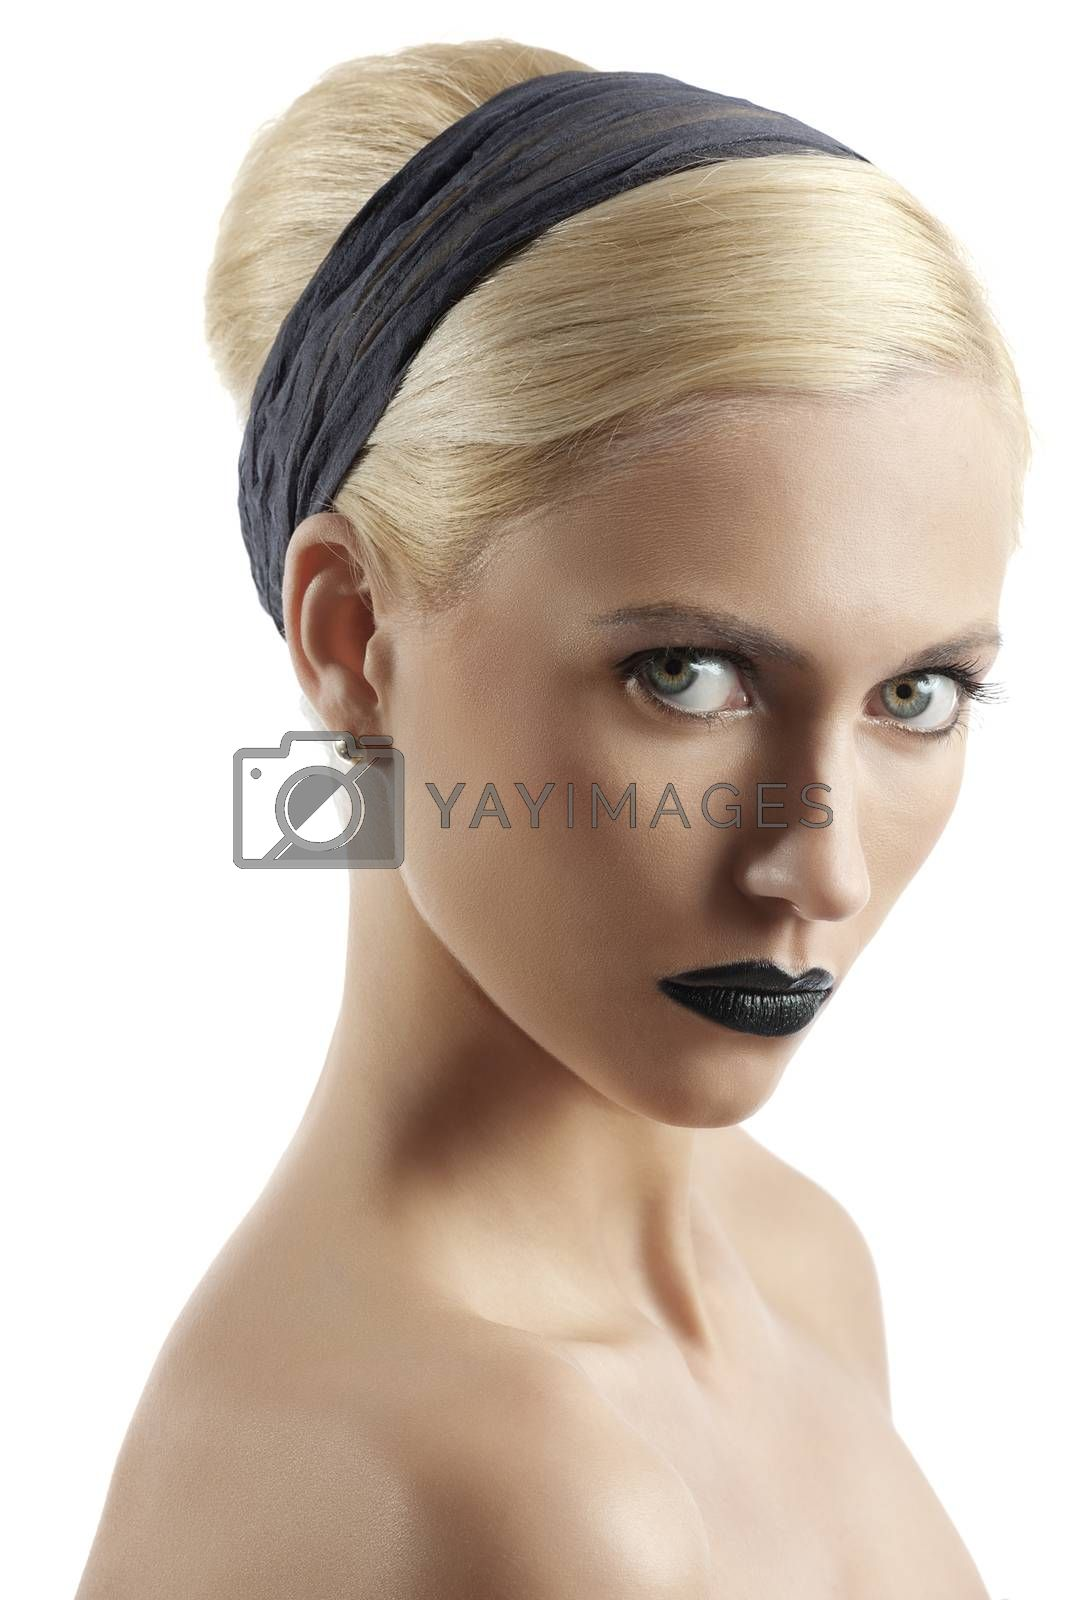 Royalty free image of fashion shot of blond girl with hair style looking at the camera by fotoCD